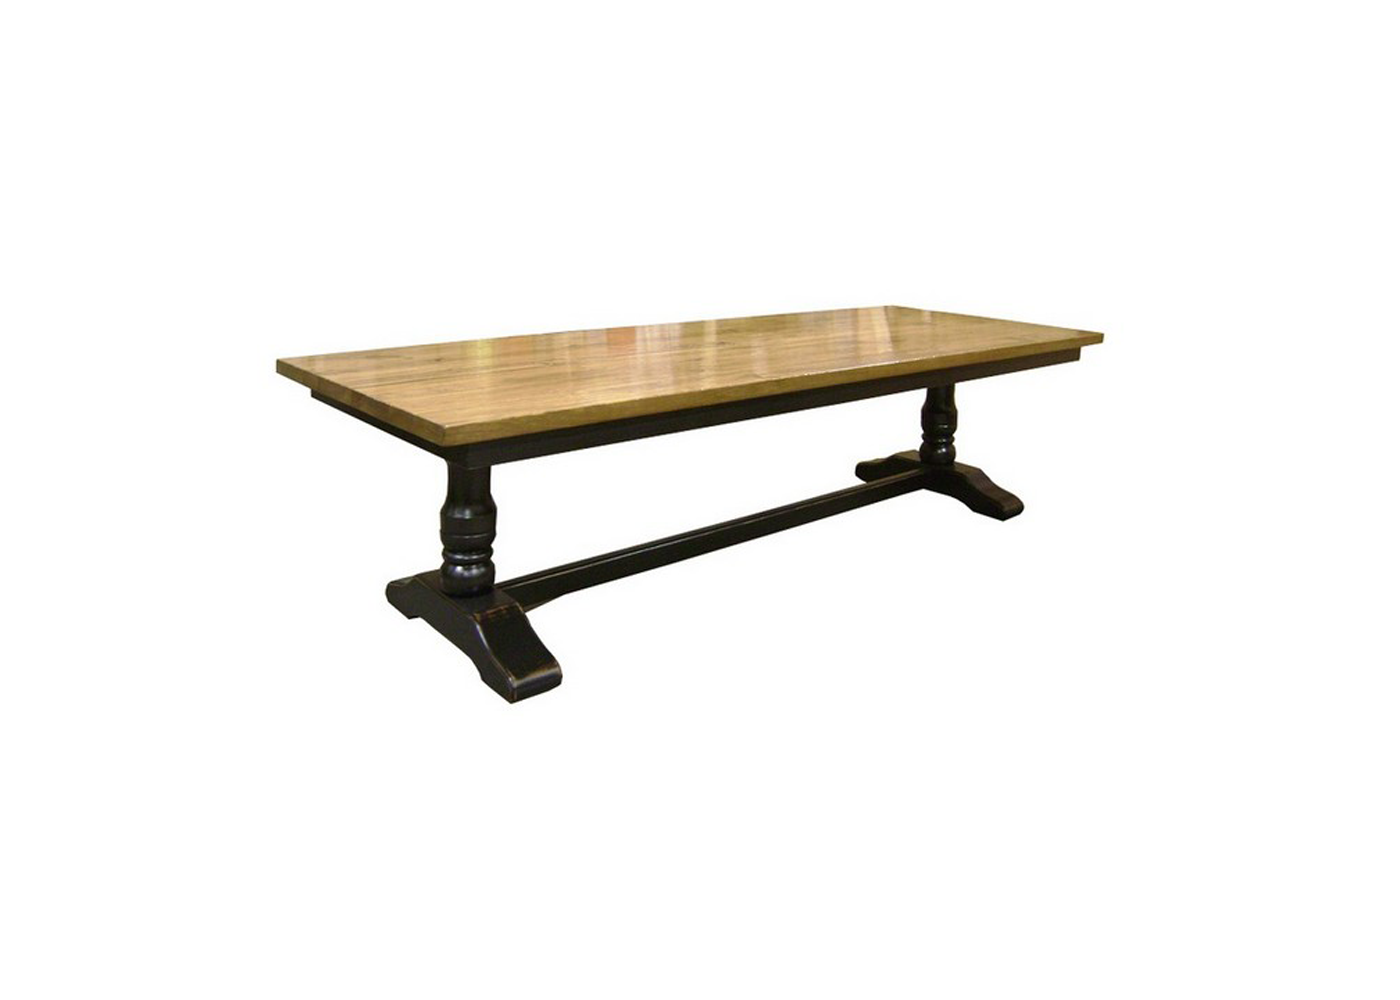 Round banana leaf coffee table amazon riau woven fiber round round marble top table dining tables on four hands furniture coffee tables round banana leaf geotapseo Image collections